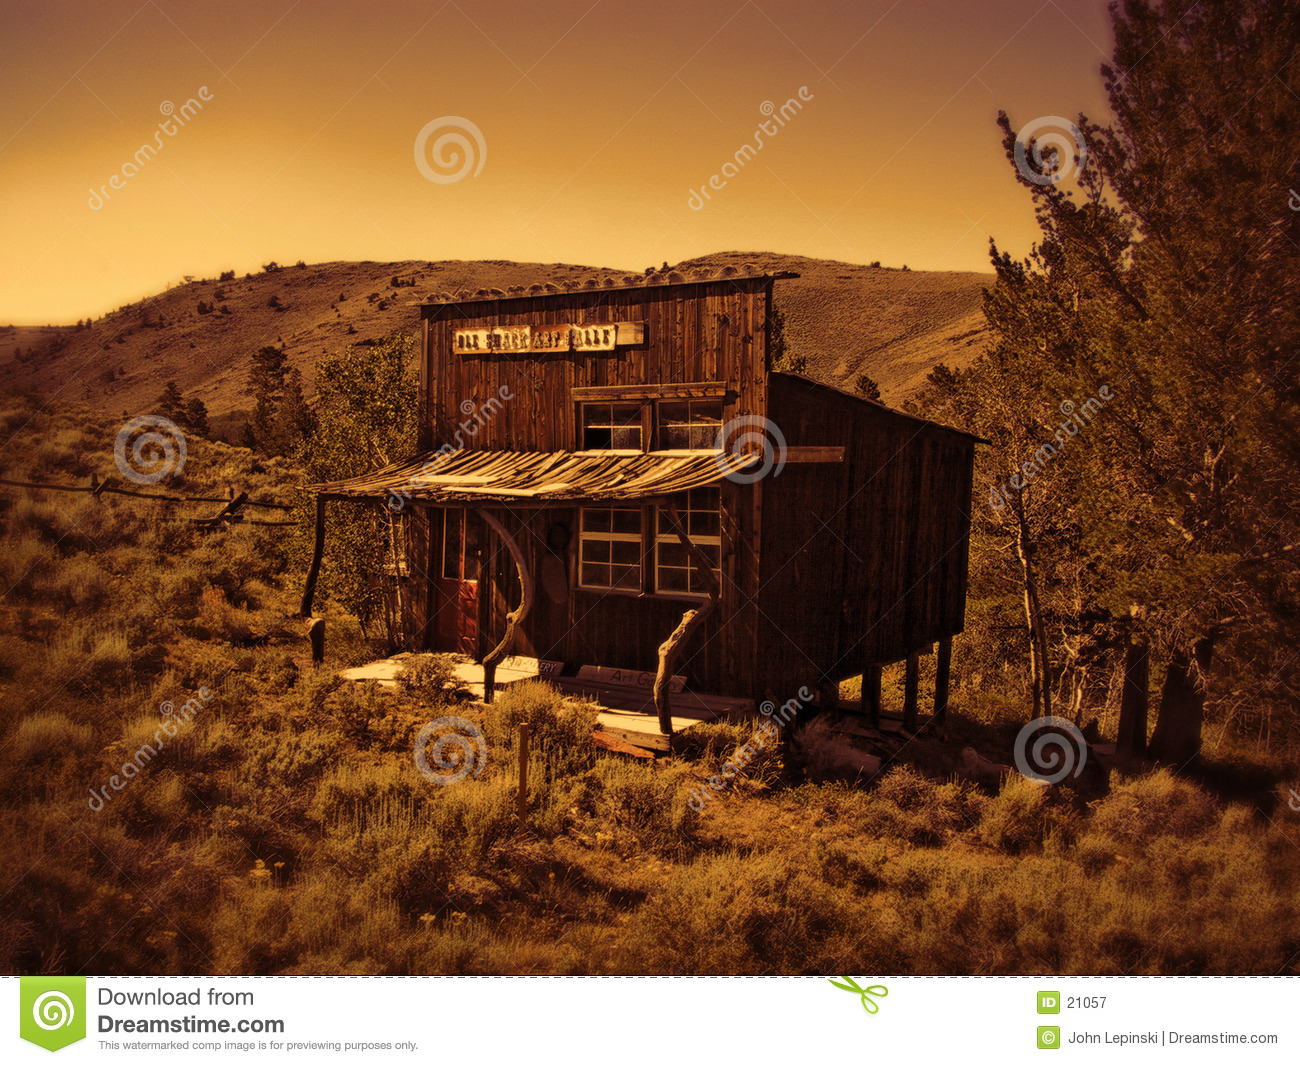 Old Western Shack Royalty Free Stock Photography - Image  21057